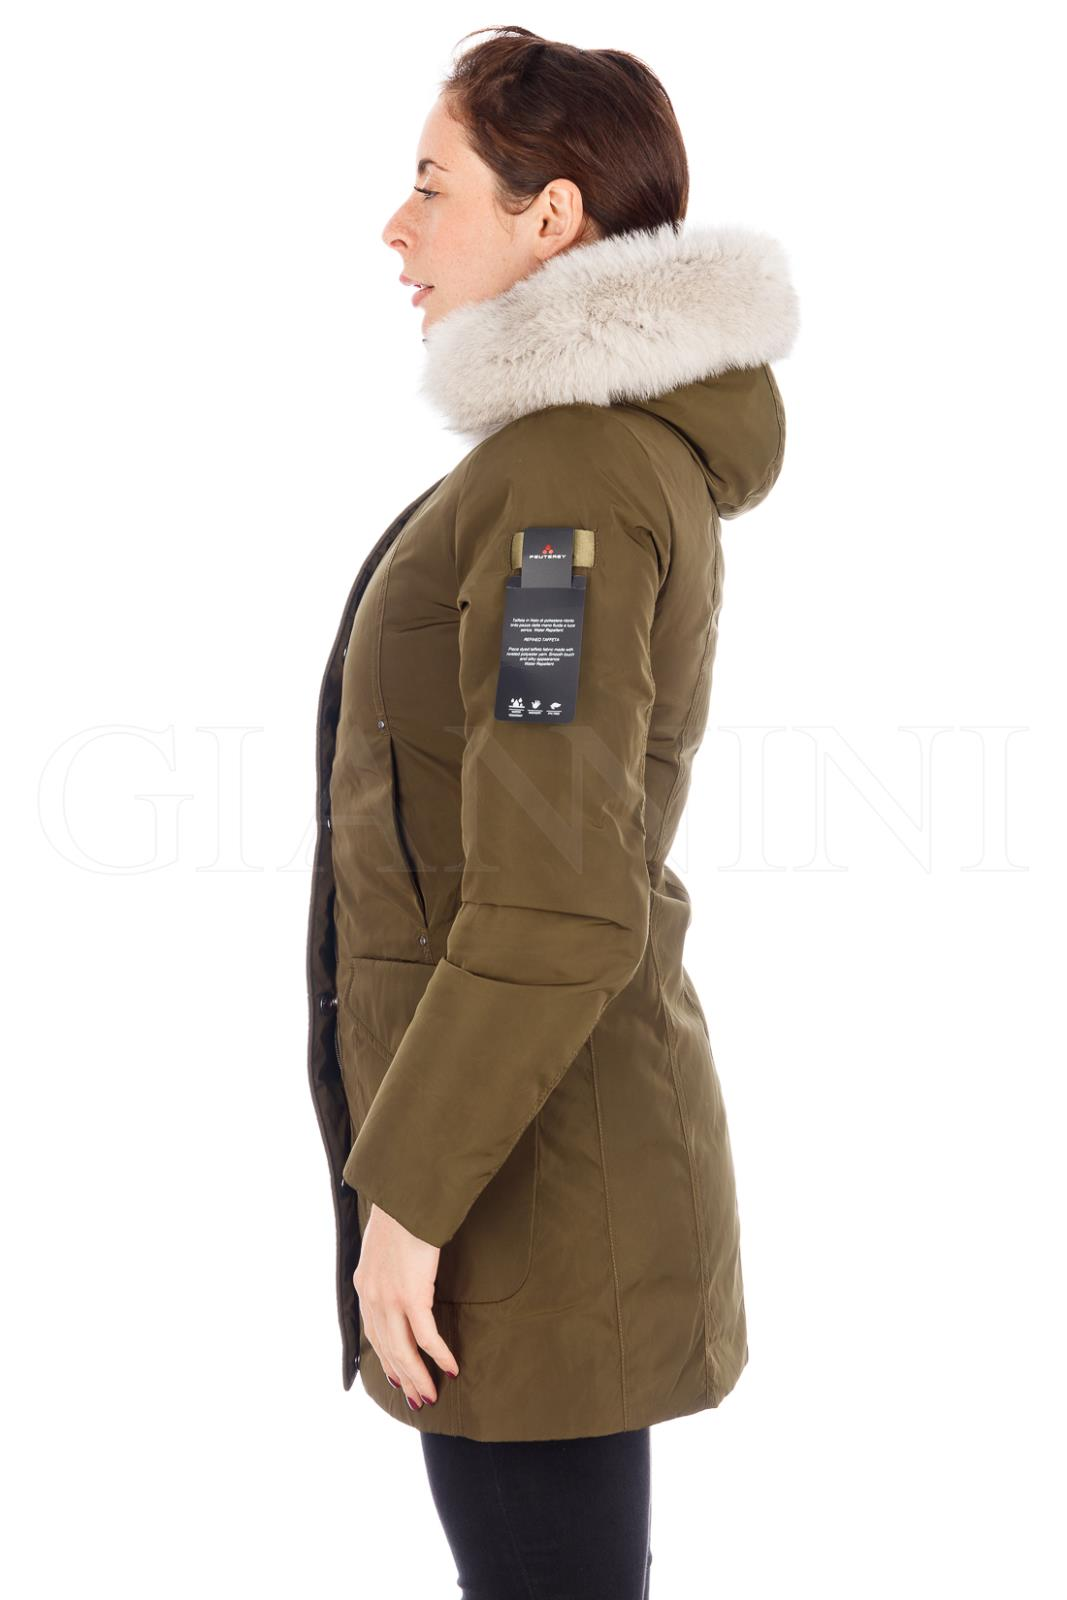 designer fashion 73ca8 6be20 PEUTEREY PARKA